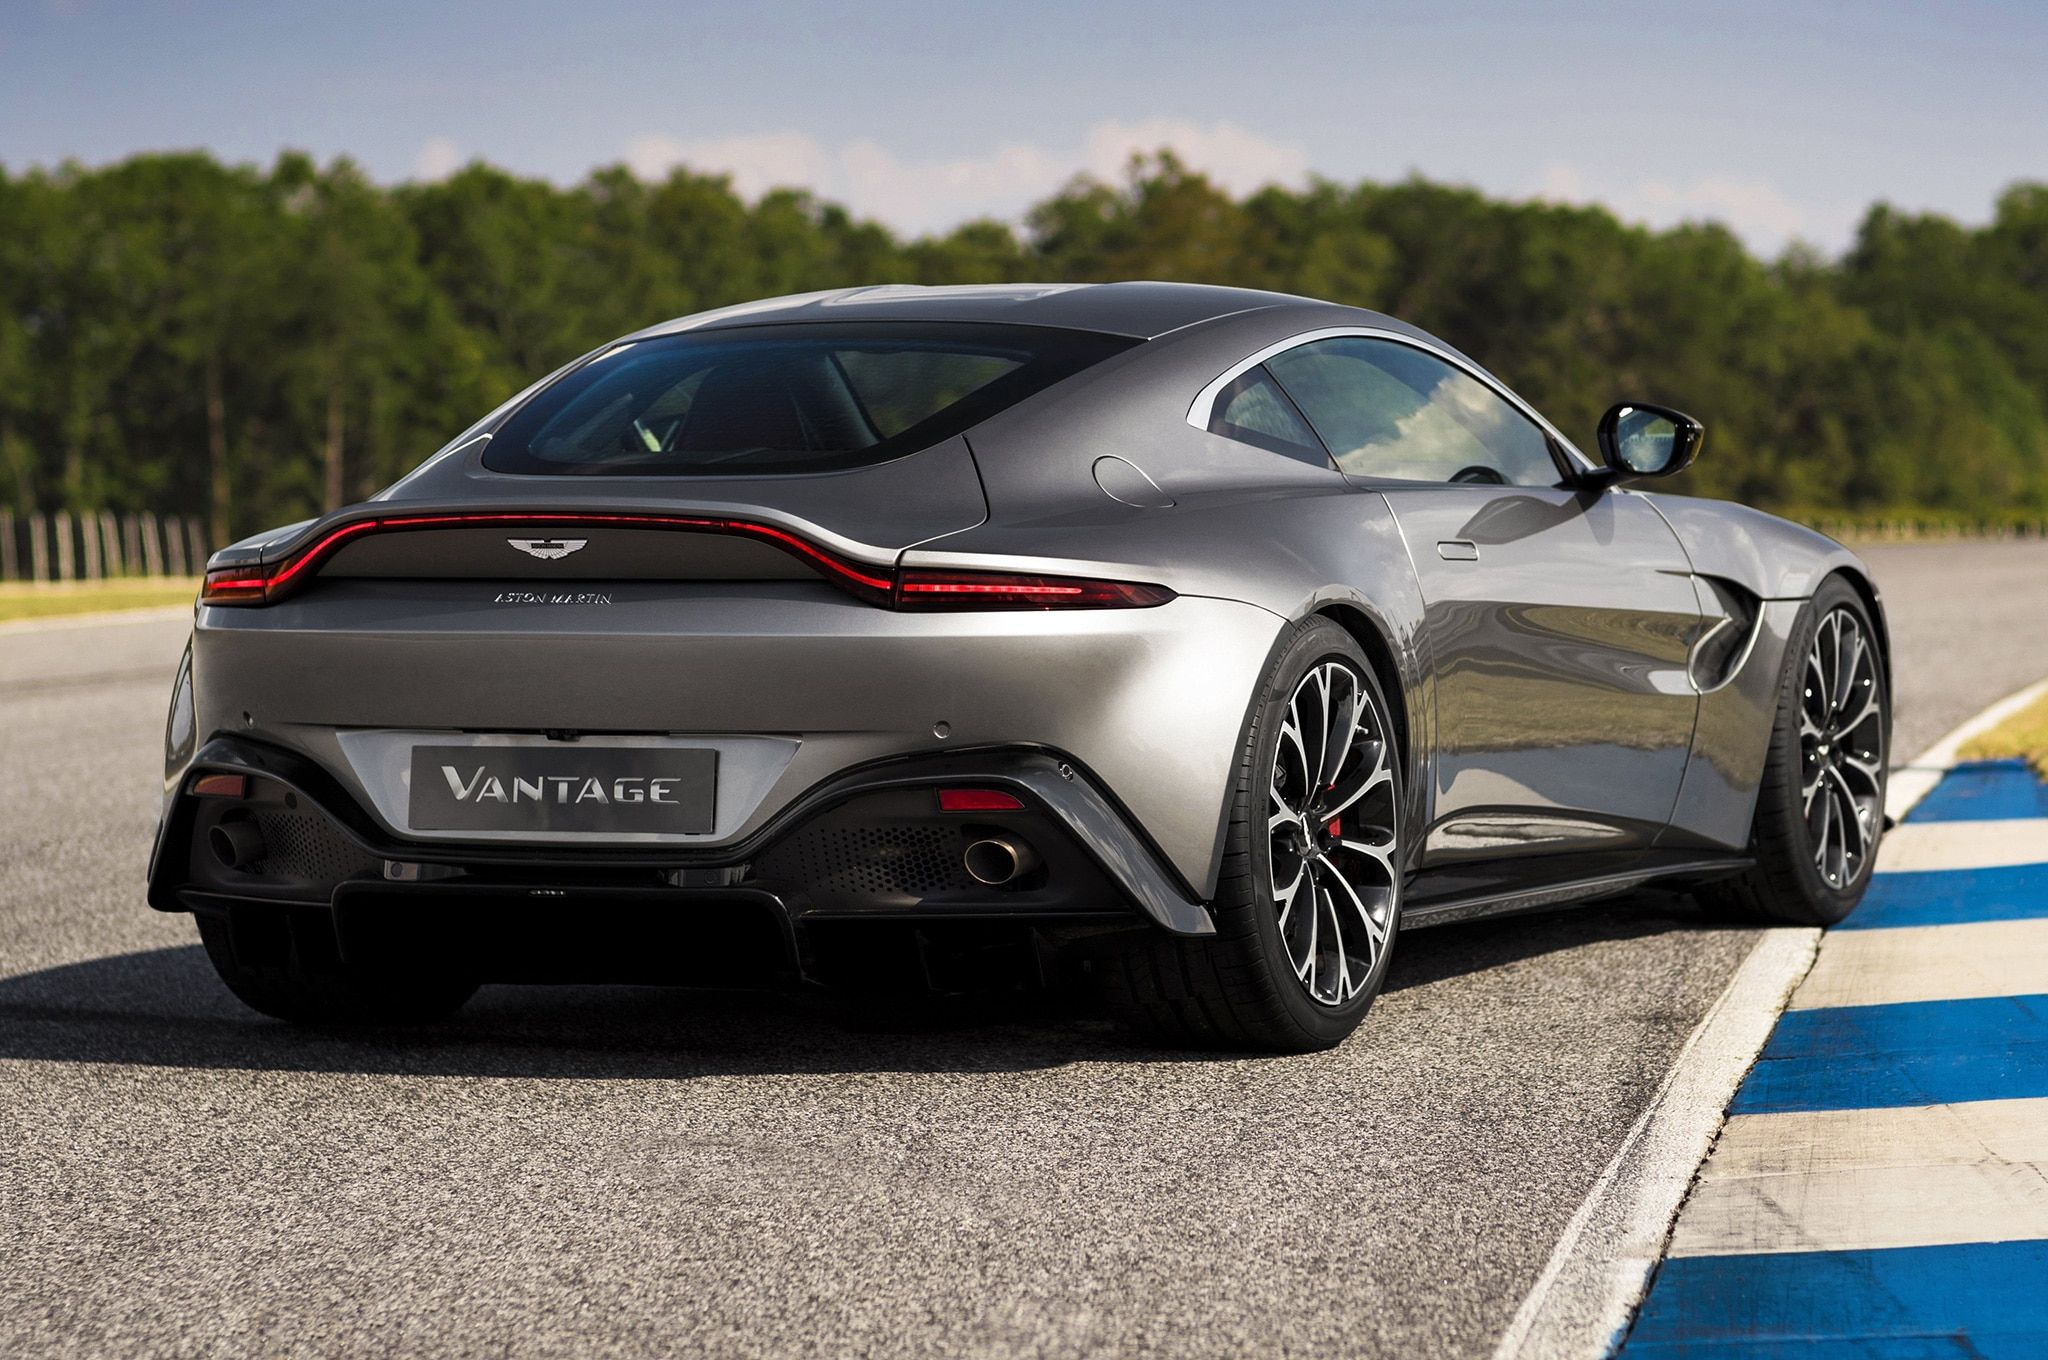 2019 Aston Martin Vantage rear side view on track